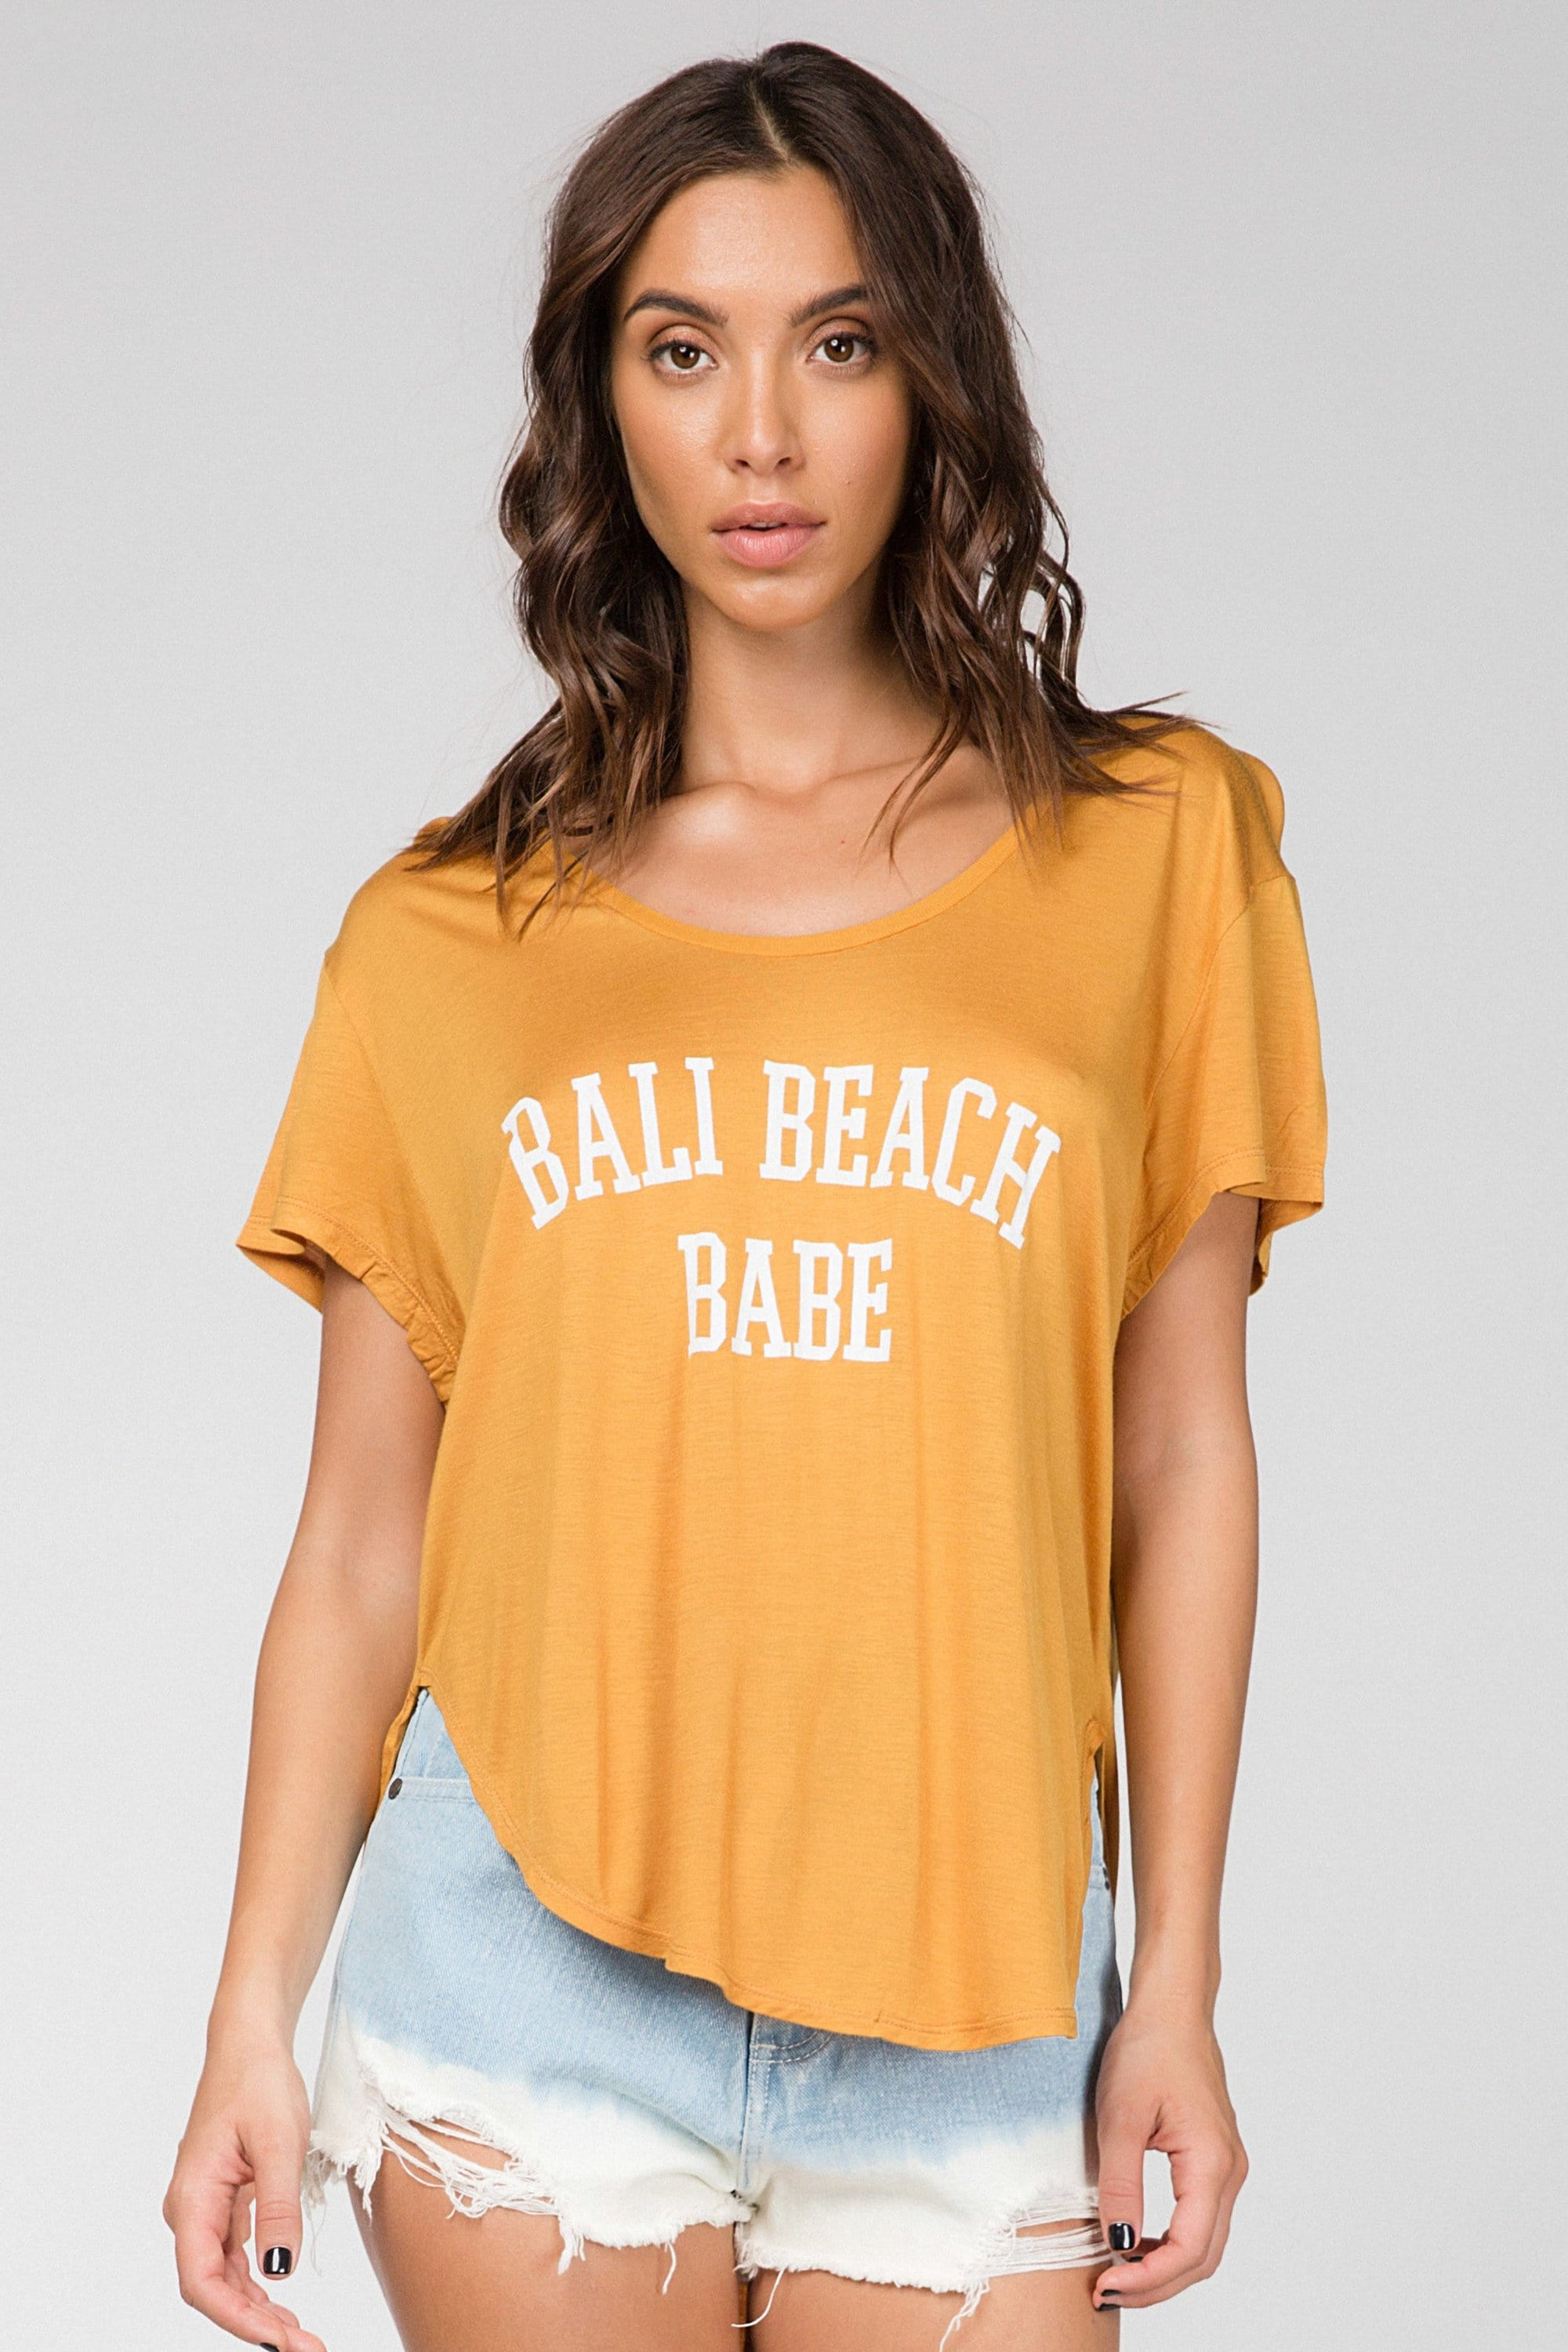 Bali Babe Tee - Woman Top - LOST IN PARADISE